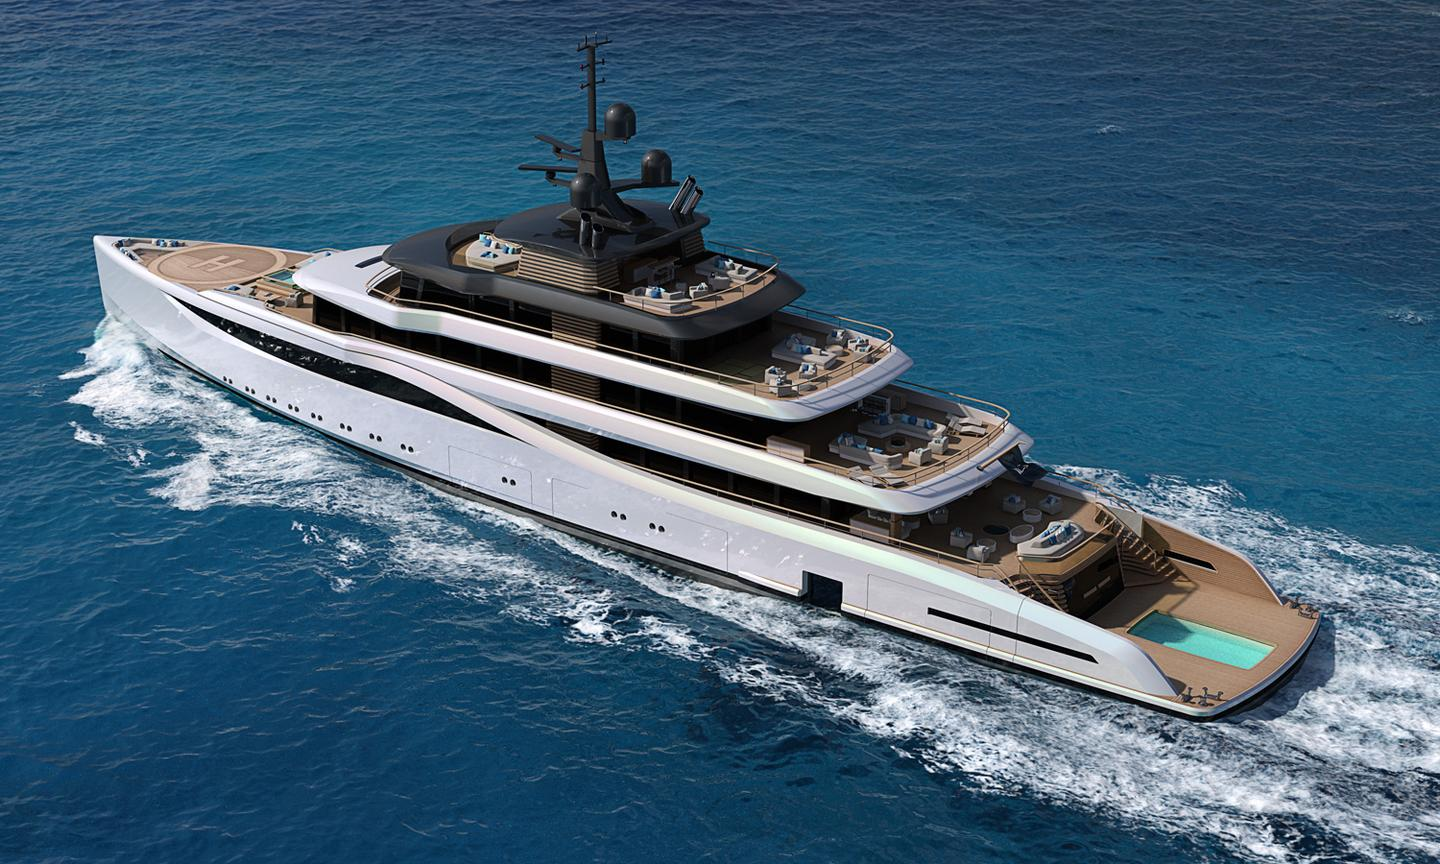 Nauta Design eliminates boundaries between manmade vessel and natural environment with the 78m Slipstream design concept